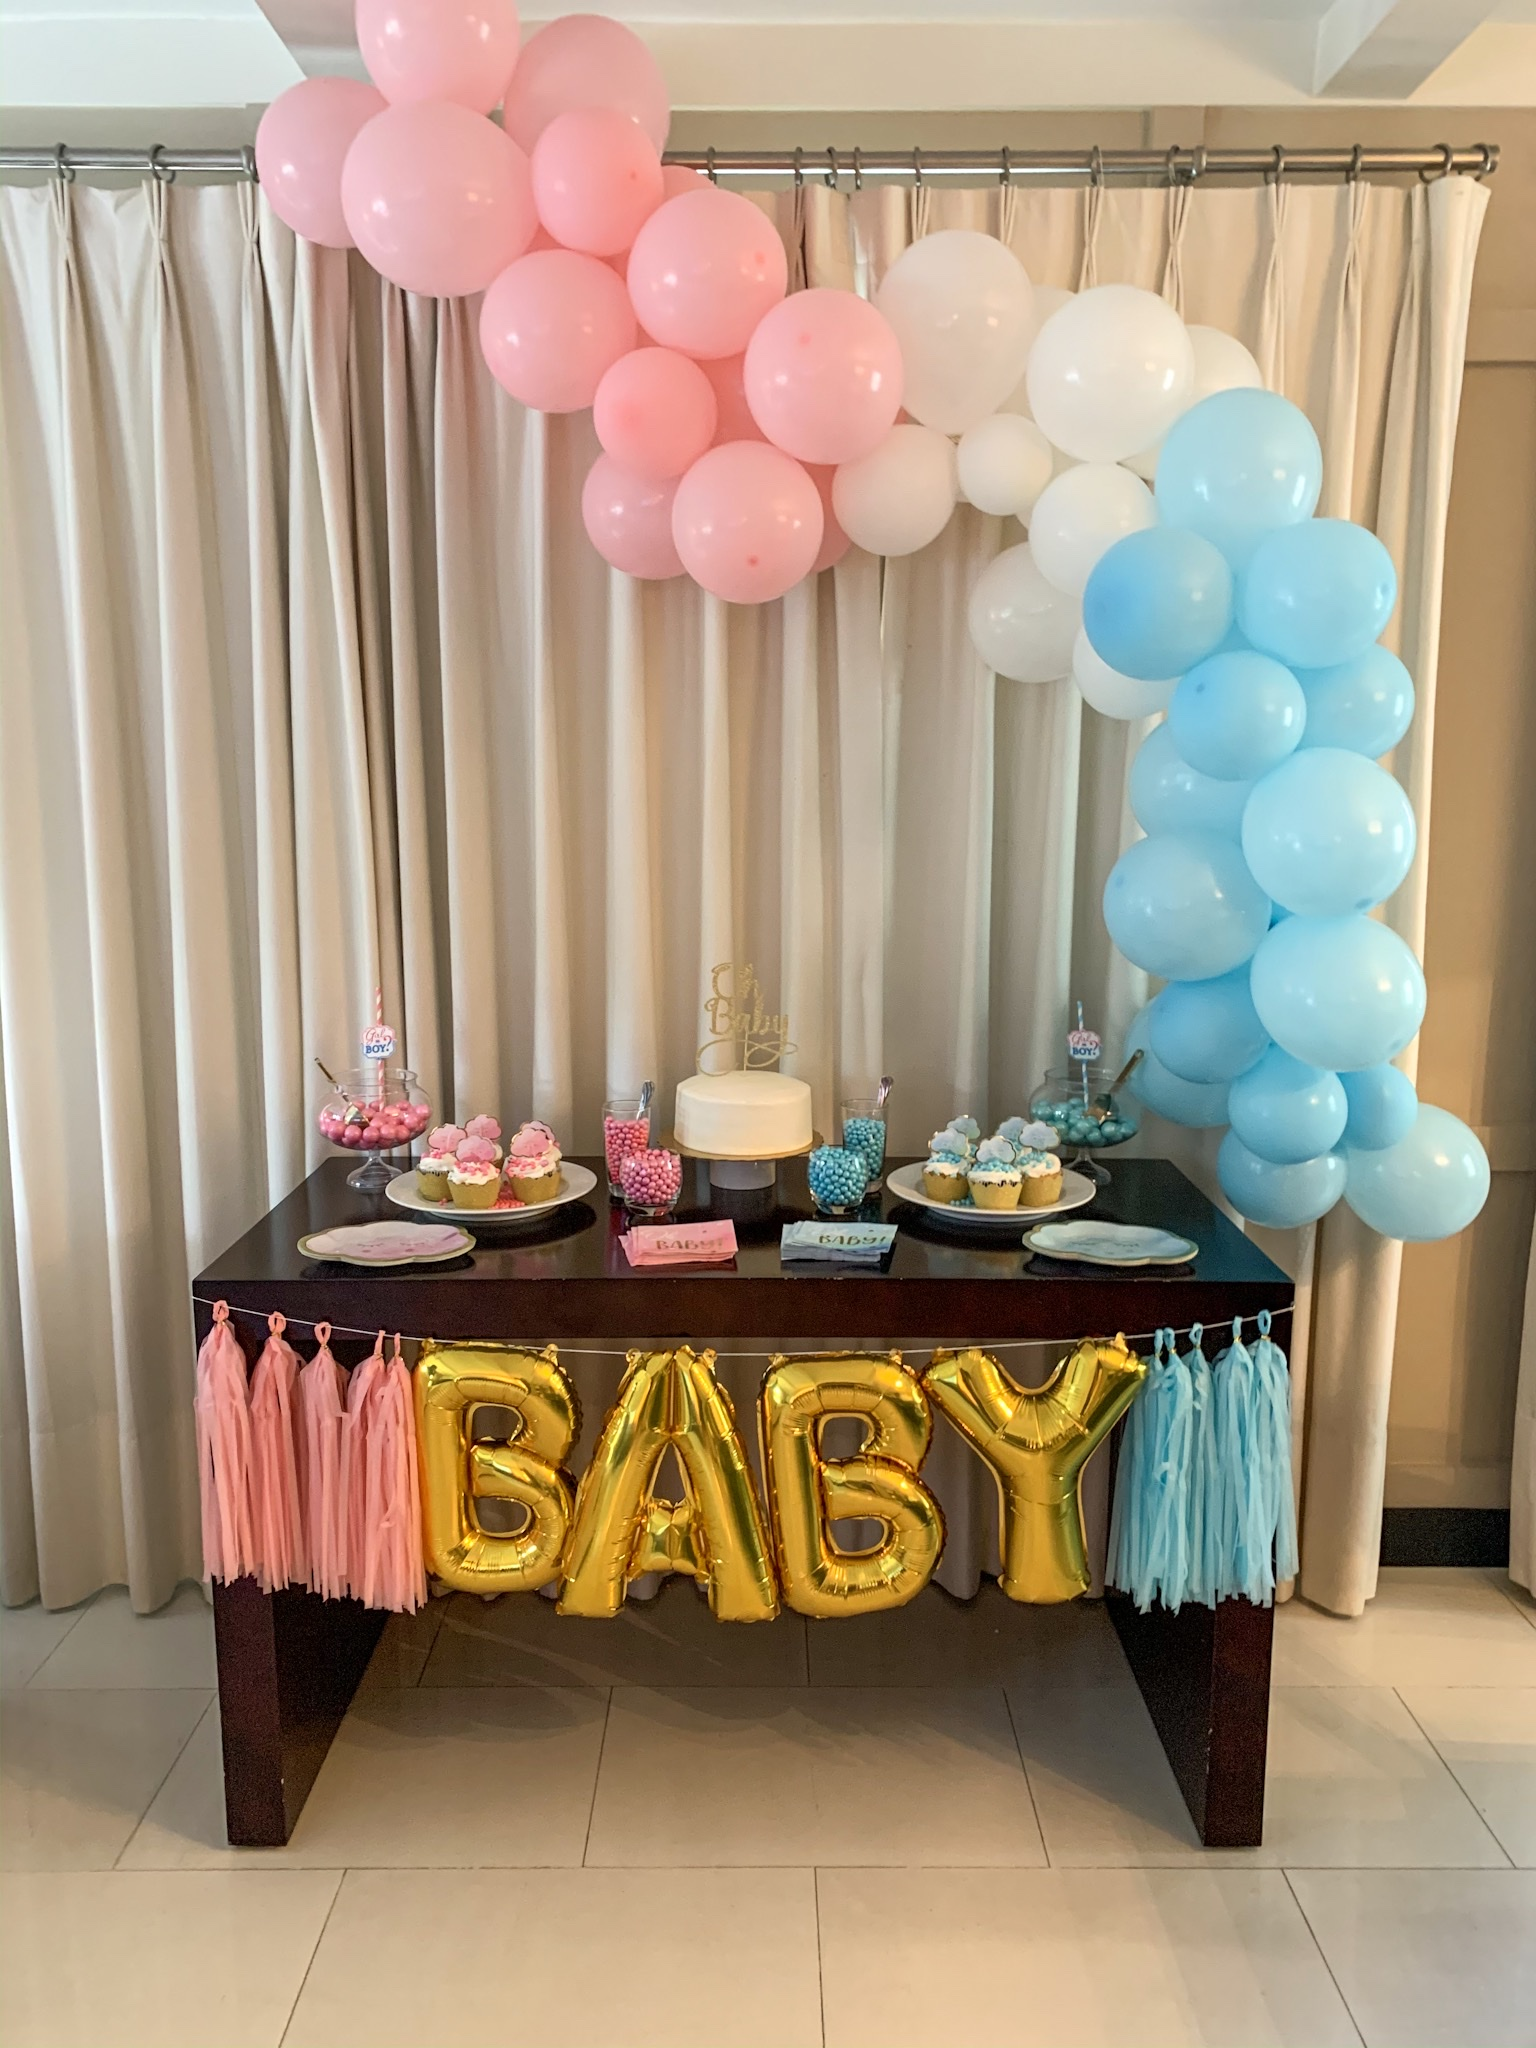 Gender Reveal Party Table Decorations  from i2.wp.com